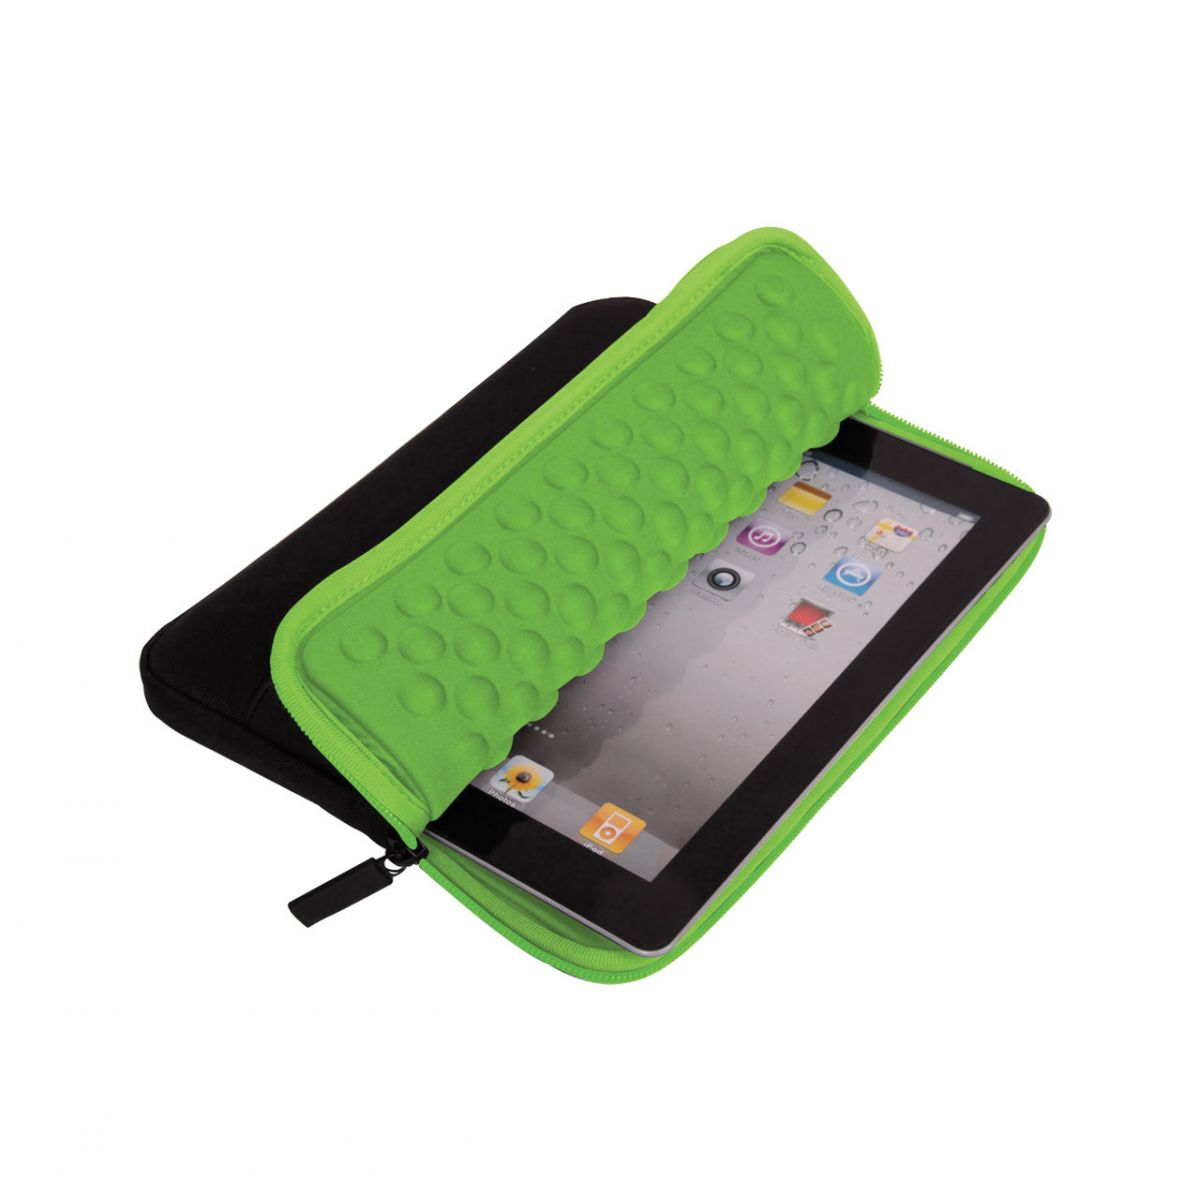 Case Bubbles Preto/Verde 10 Polegadas 0551 - Leadership